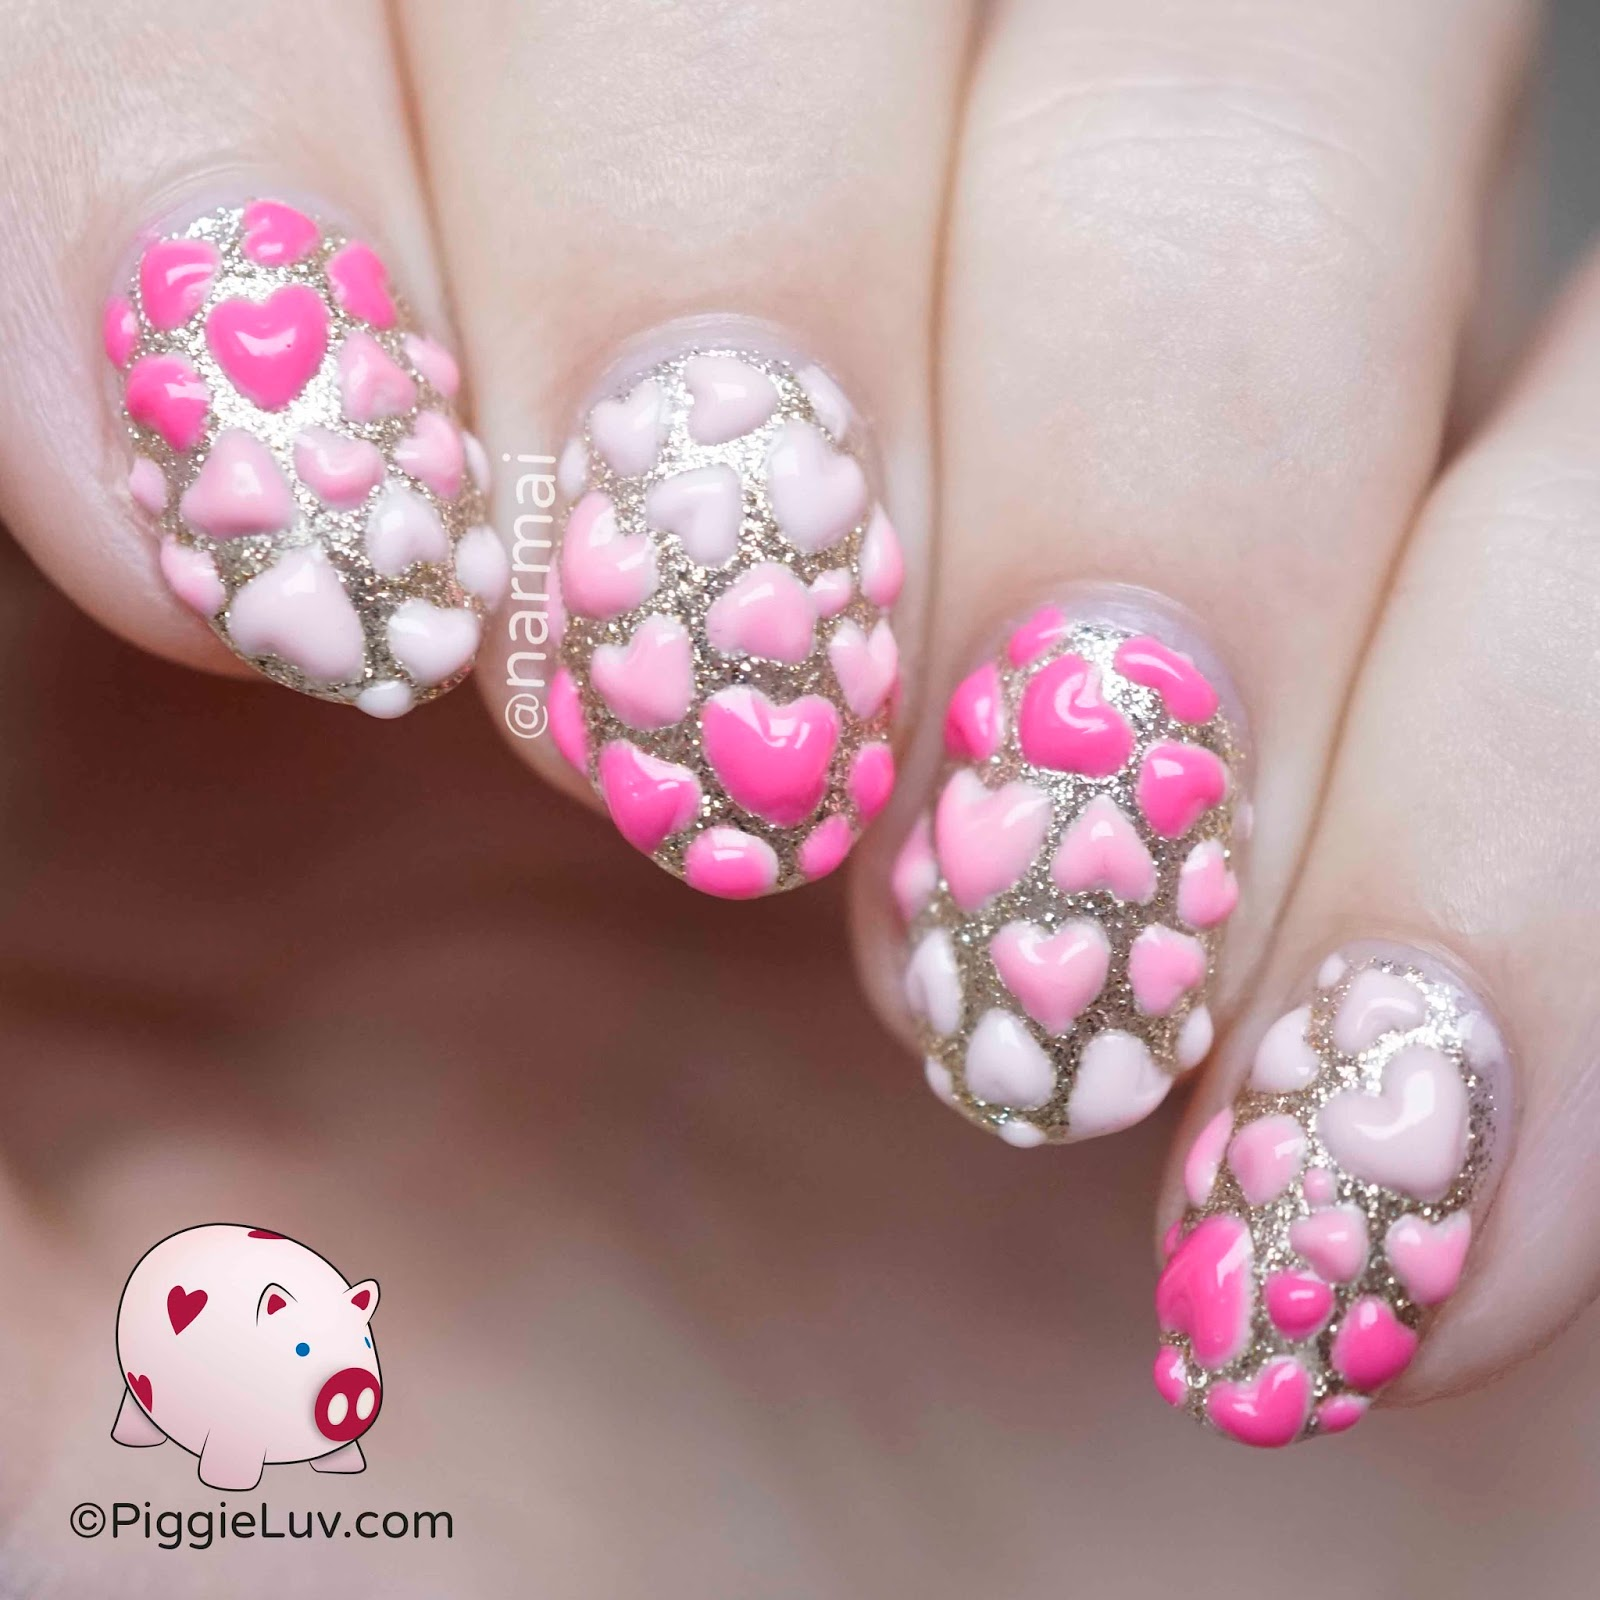 Piggieluv 3d Hearts Nail Art For Valentines Day